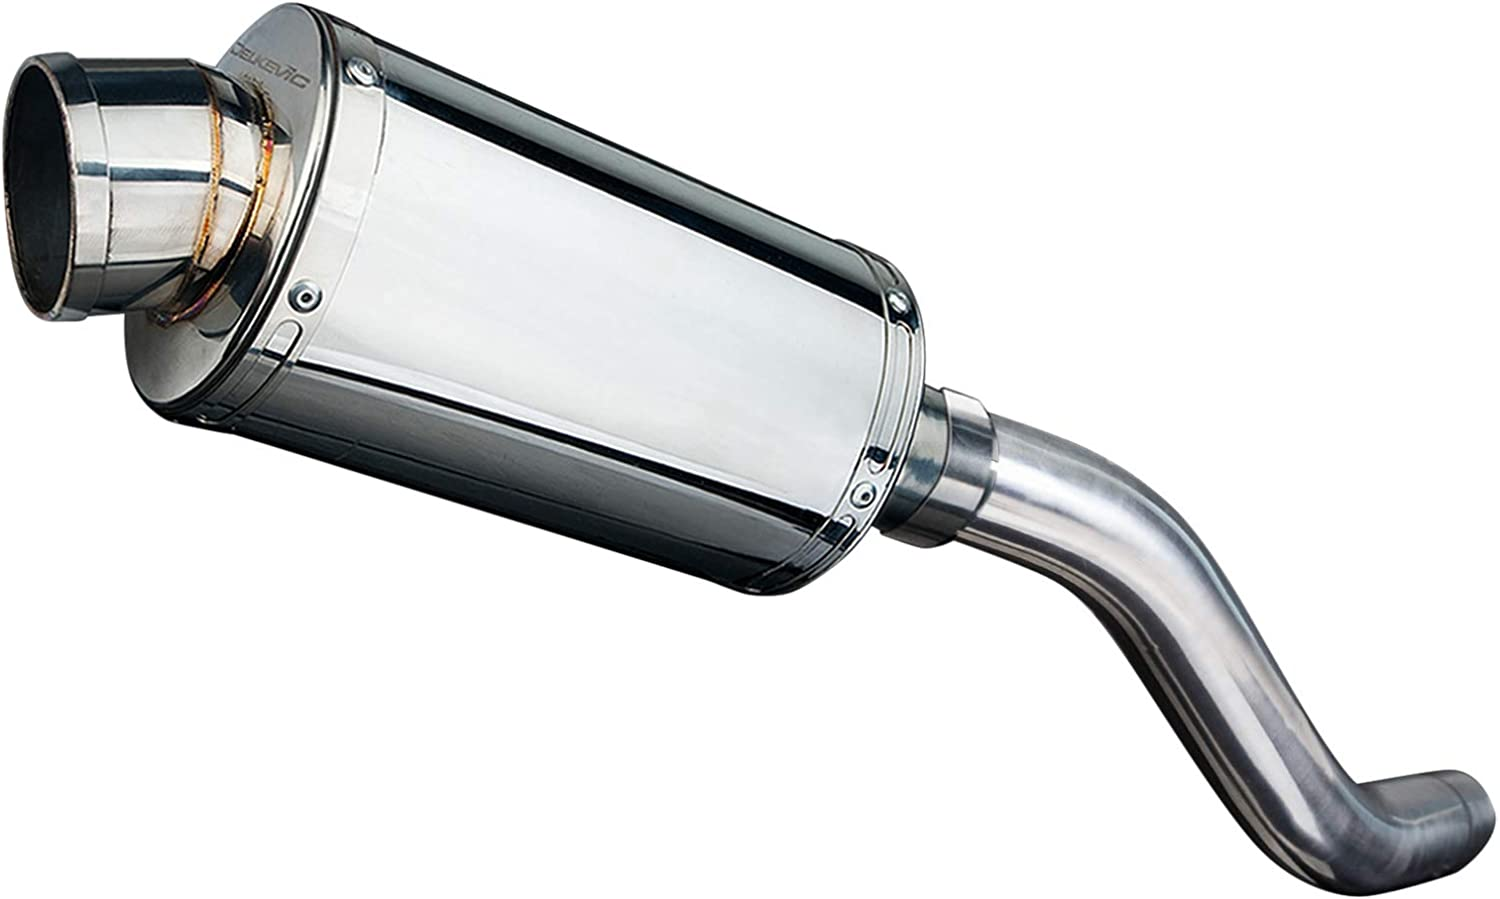 Delkevic Aftermarket Slip On compatible with Kawasaki Z800 SS70 9 Stainless Steel Oval Muffler Exhaust 13-16